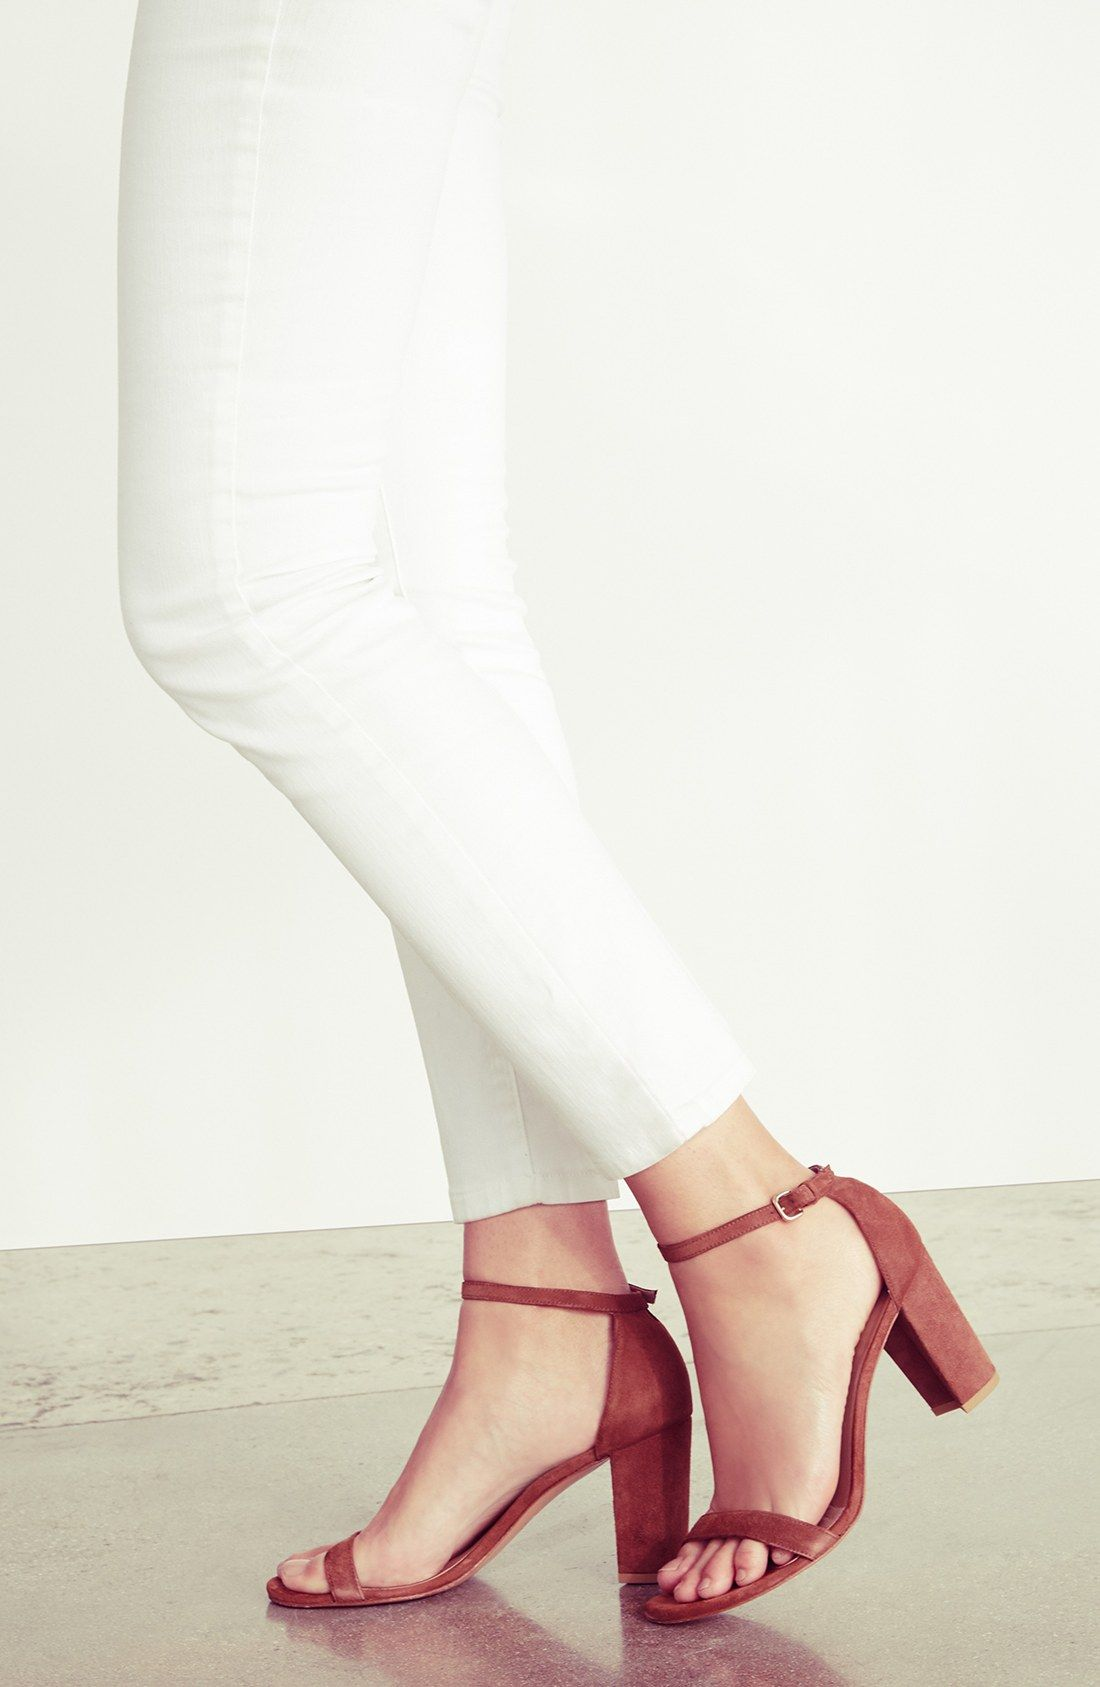 ... Spring 2016 Shoes from Stuart Weitzman. Stuart Weitzman  NearlyNude   Ankle Strap Sandal (Women) f39c24e9d9dc